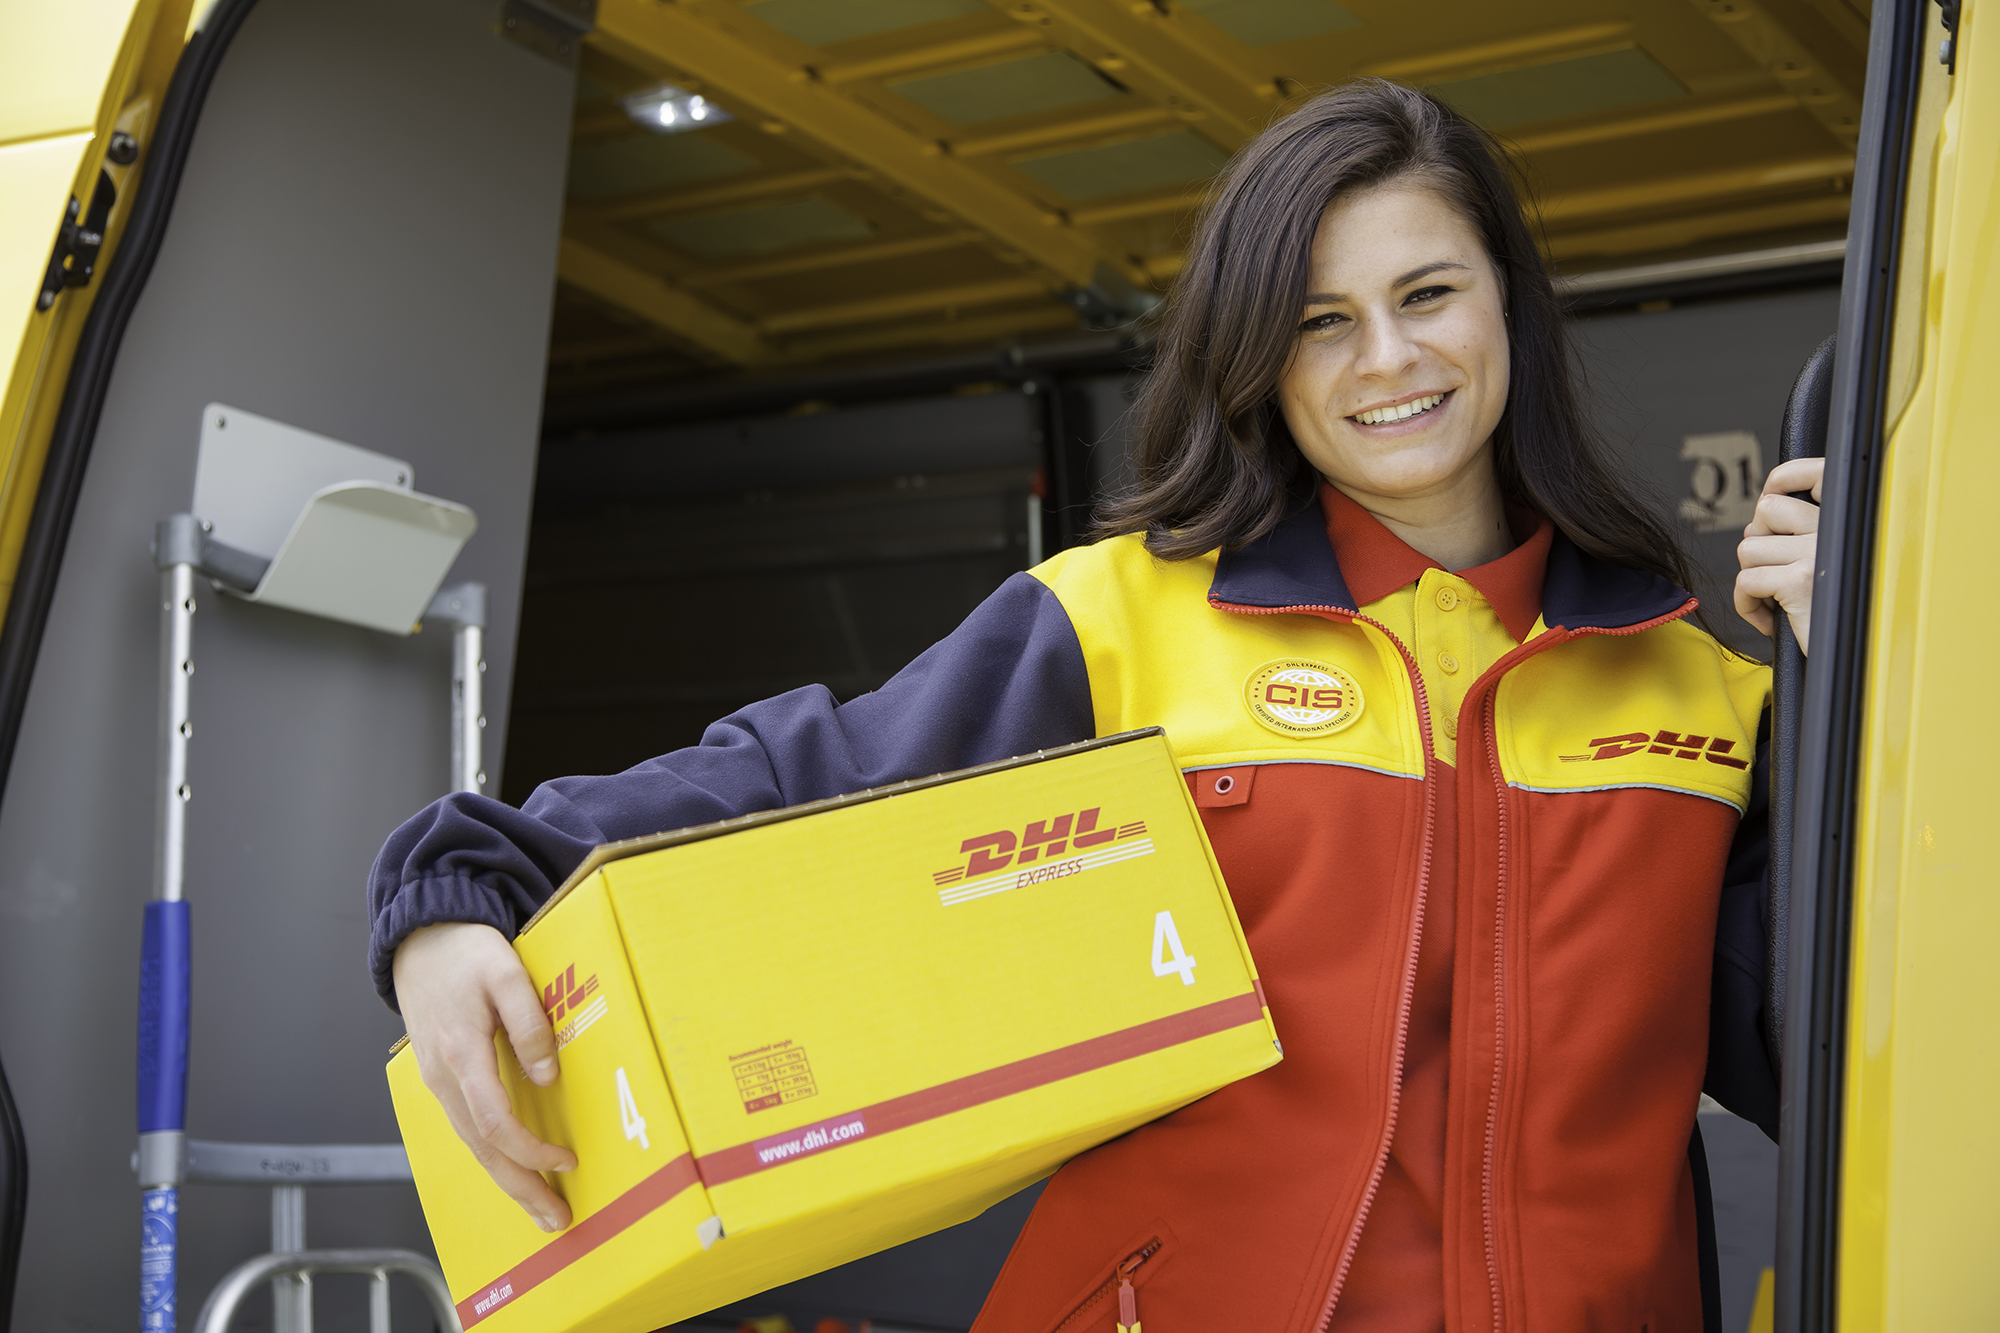 https://www.emerce.nl/content/uploads/2017/05/DHL20Express20koerier.jpg